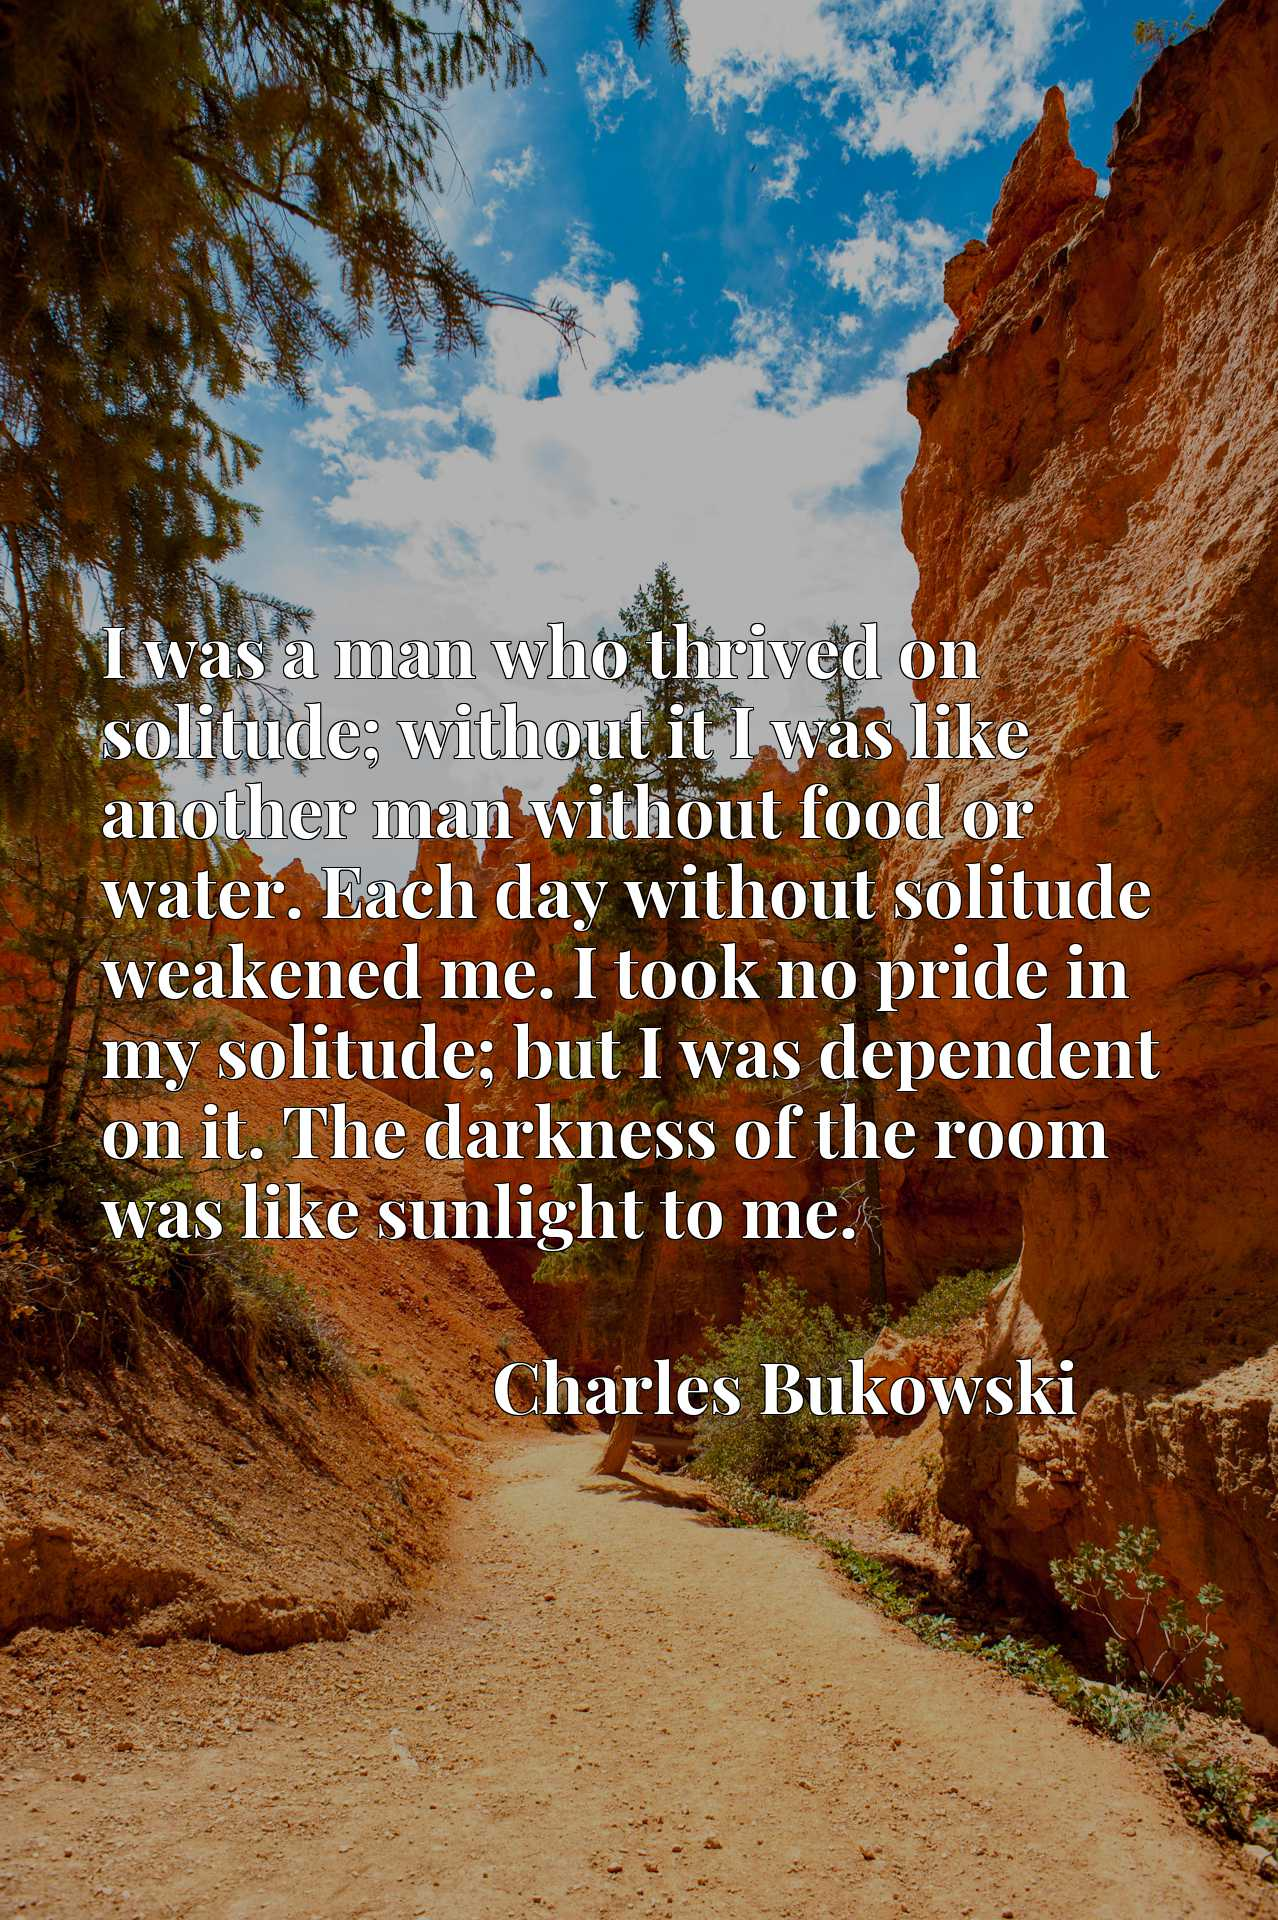 I was a man who thrived on solitude; without it I was like another man without food or water. Each day without solitude weakened me. I took no pride in my solitude; but I was dependent on it. The darkness of the room was like sunlight to me.